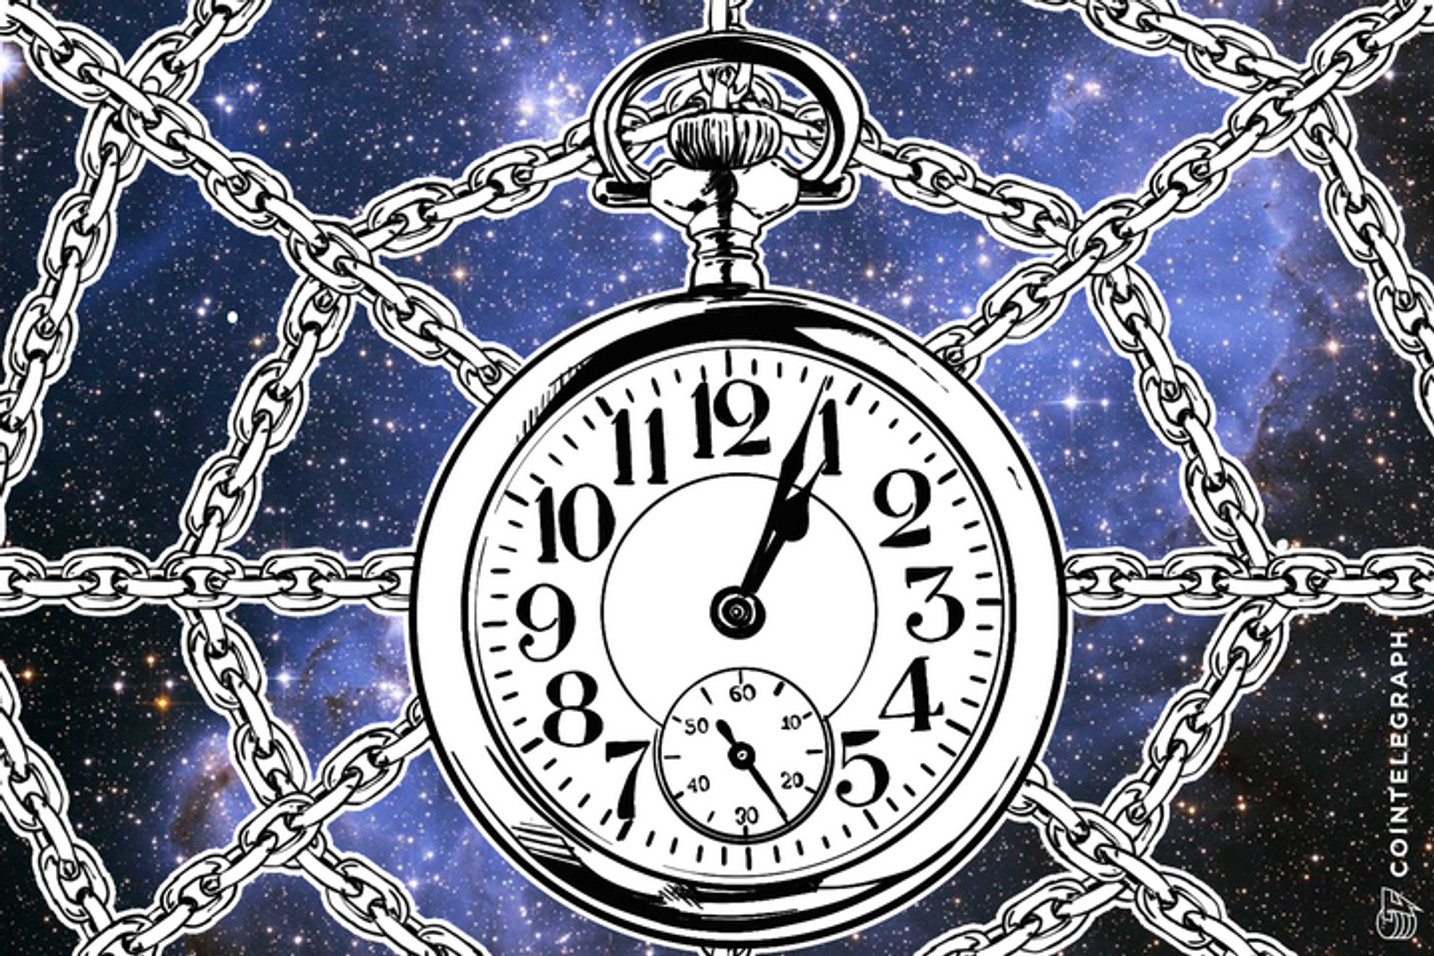 The Timechain: Improving Smart Contract Technology Using Time-Locks